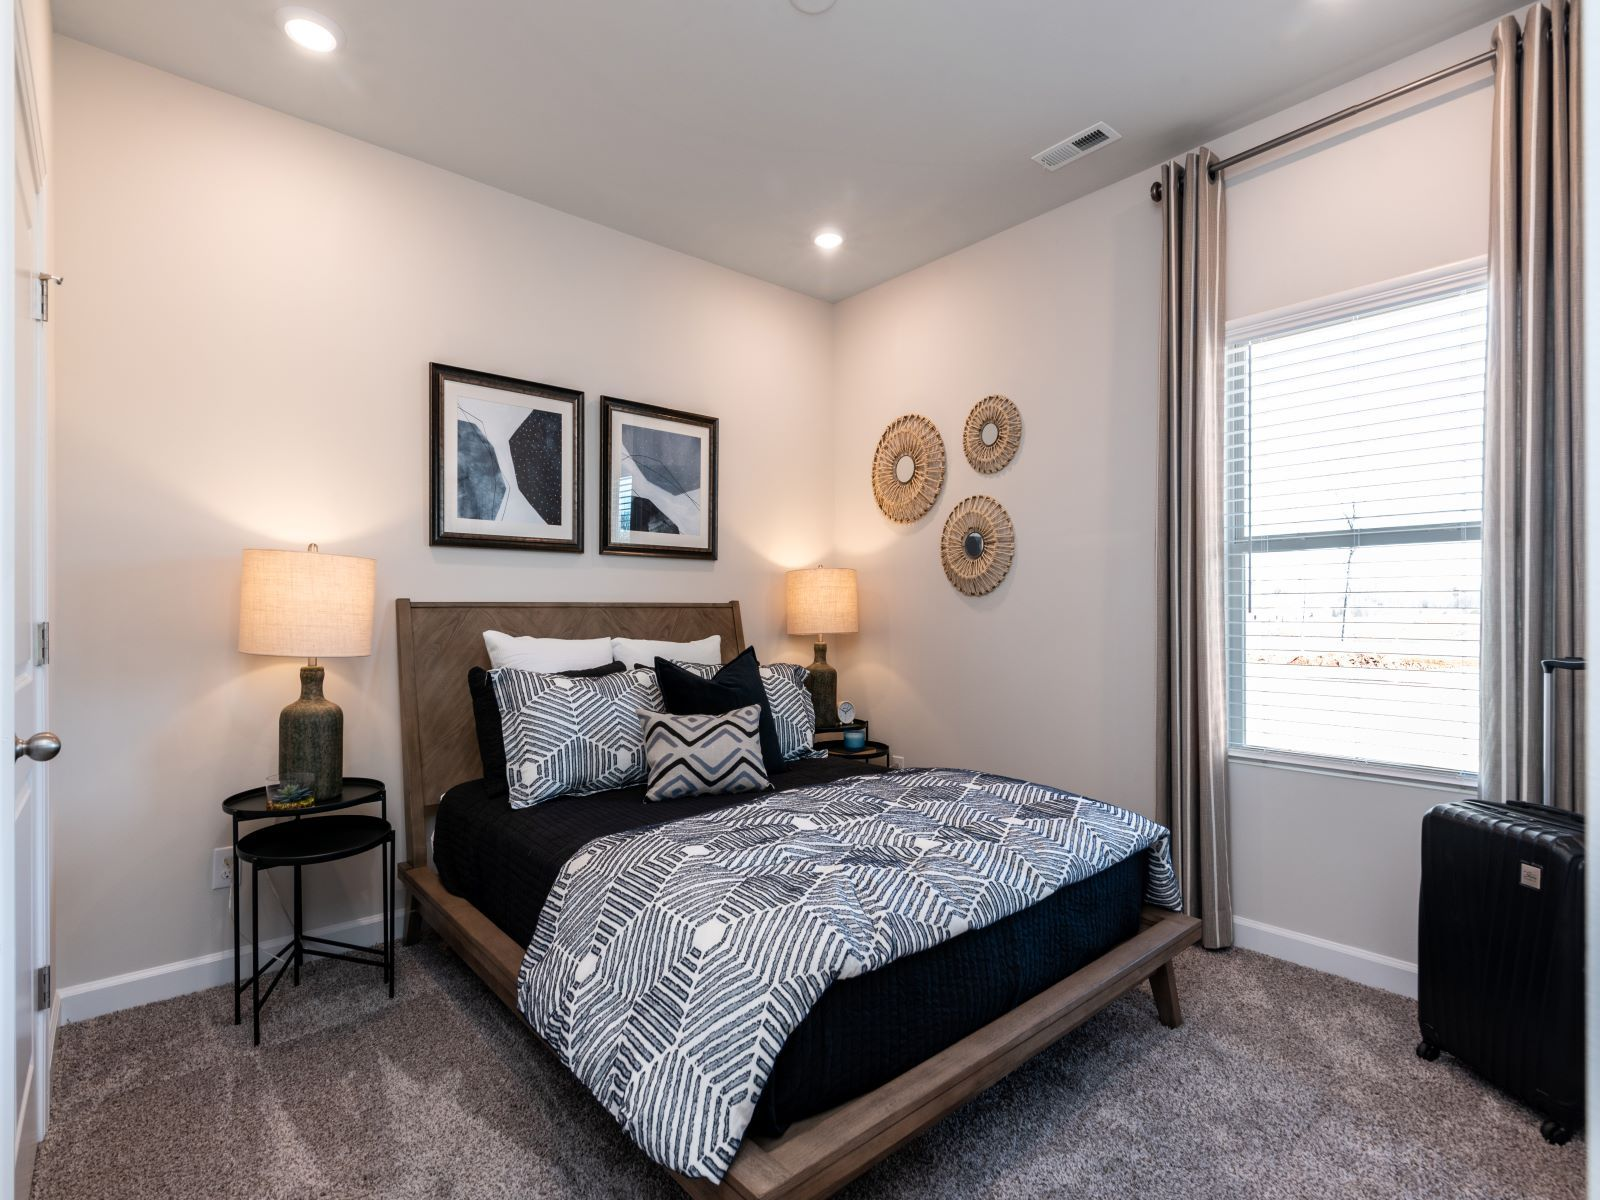 Bedroom featured in the Gibson Basement By Meritage Homes in Charlotte, NC